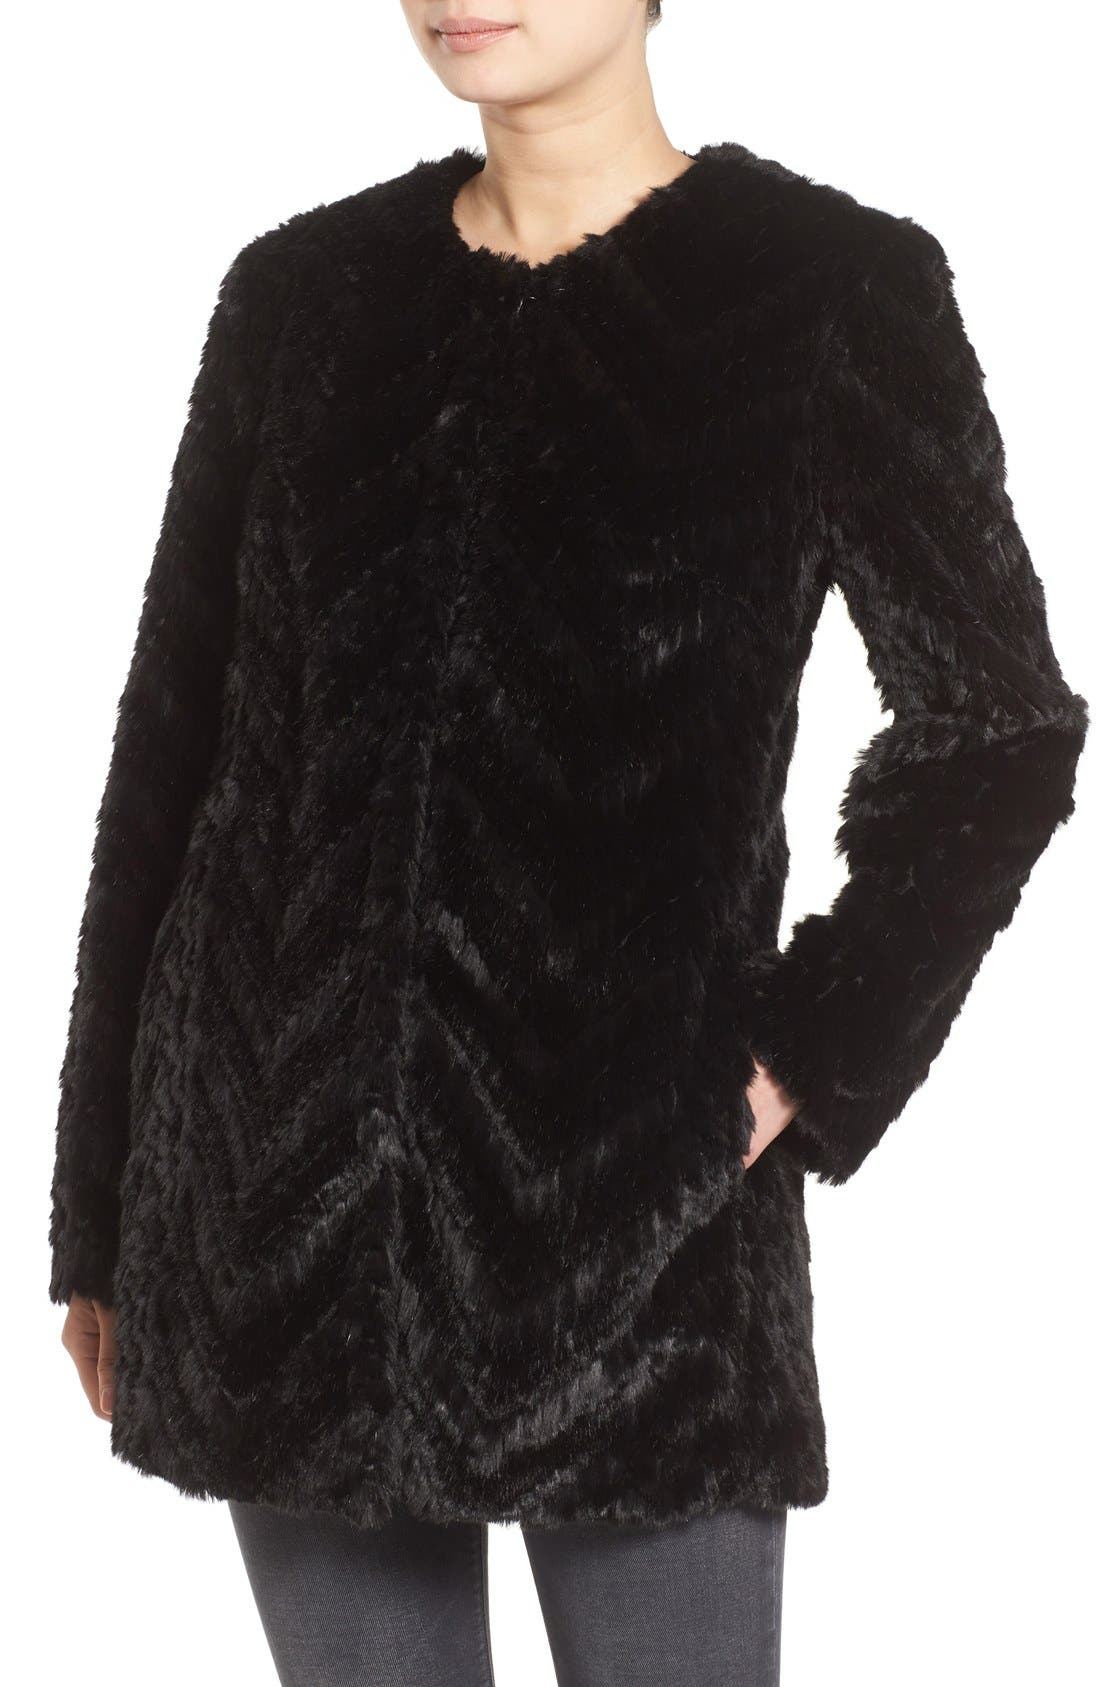 Tiered Faux Fur Topper,                             Alternate thumbnail 4, color,                             001